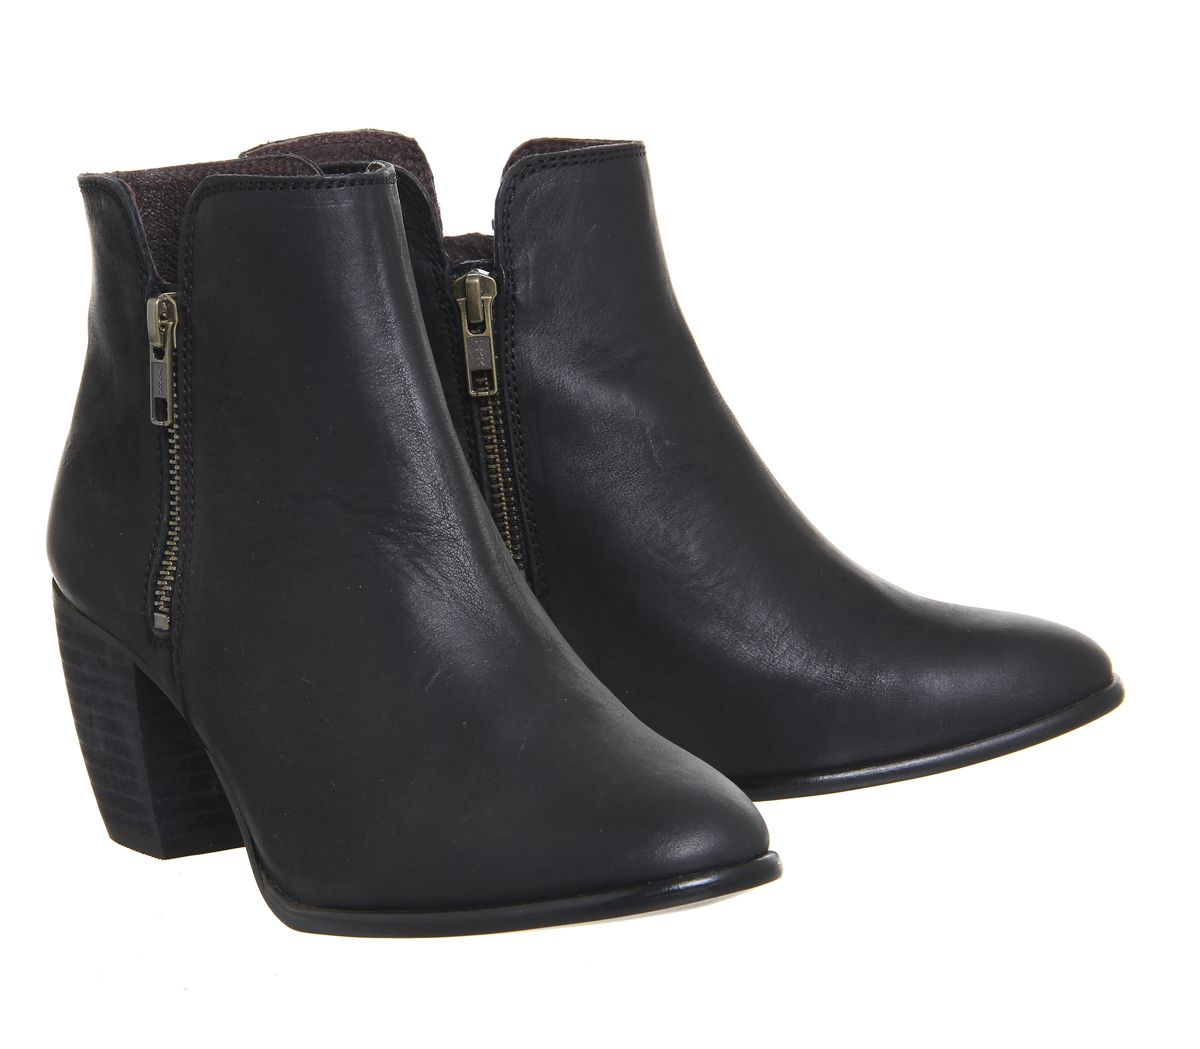 Outlet Store Women Office Justine Double Zip Boots Black Leather Ankle Boots